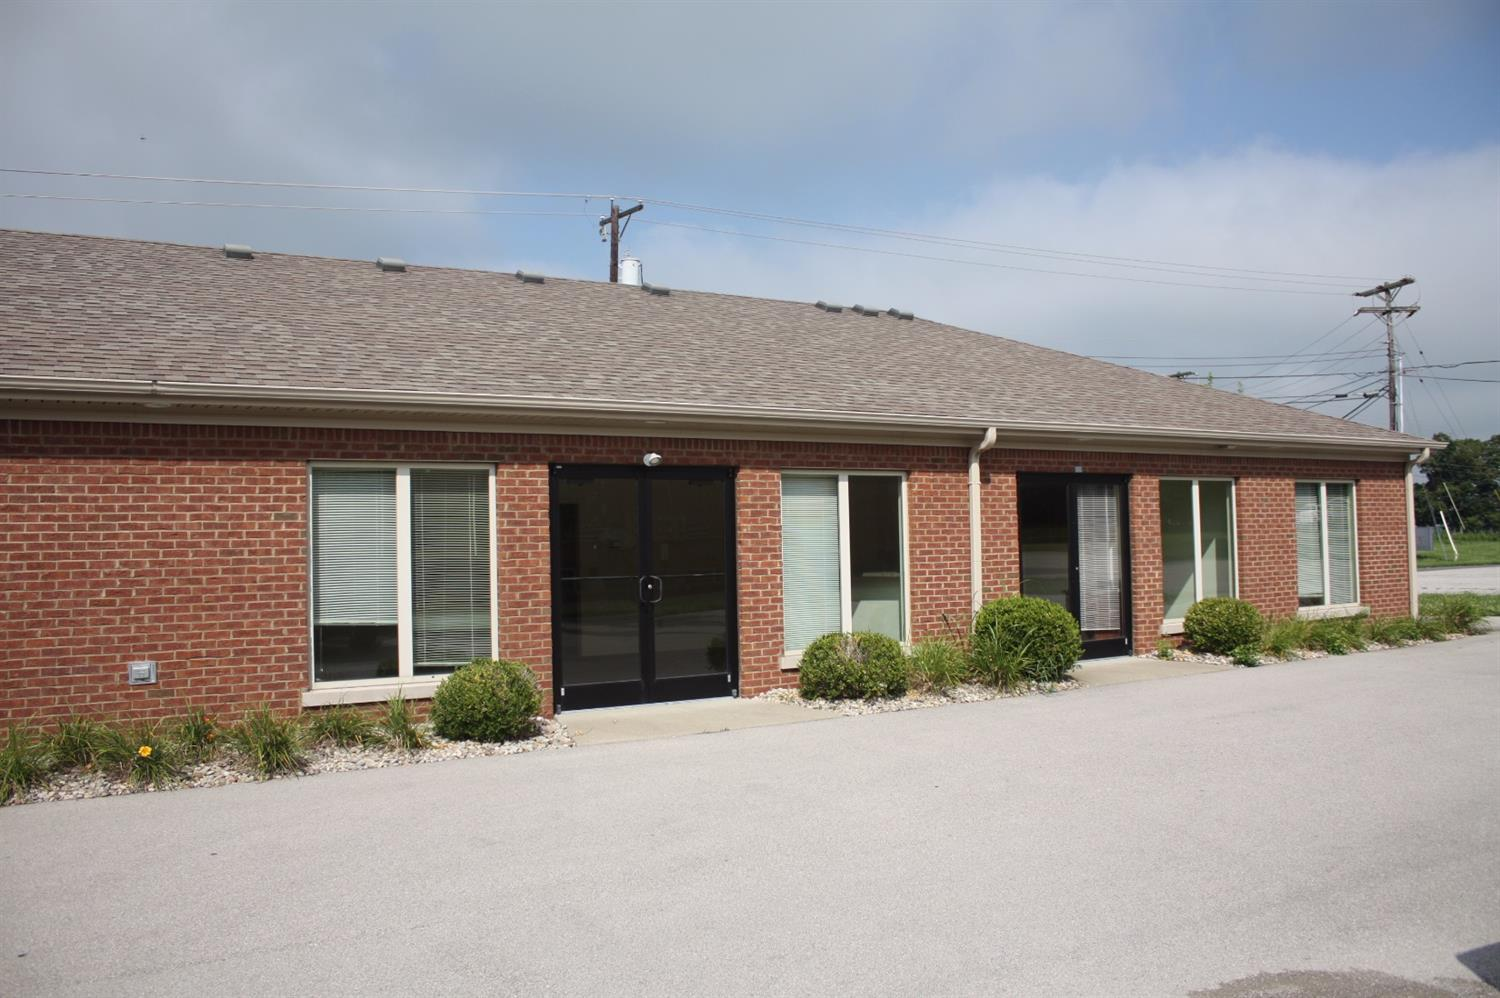 Freestanding%20commercial%20building%20available%20near%20Downtown%20Versailles.%20Zoned%20B-4%20(Highway%20Business%20District),%20this%20location%20can%20serve%20a%20number%20of%20possible%20tenants.%20The%204,000%20SF%20building%20consists%20of%202%20(two)%201,000%20SF%20units%20and%20a%202,000%20SF%20unit%20which%20is%20currently%20fit%20up%20for%20a%20medical/office%20user.%20The%20property%20is%20available%20for%20sale%20or%20lease,%20with%20available%20units%20ranging%20from%201,000%20SF%20to%203,000%20SF.